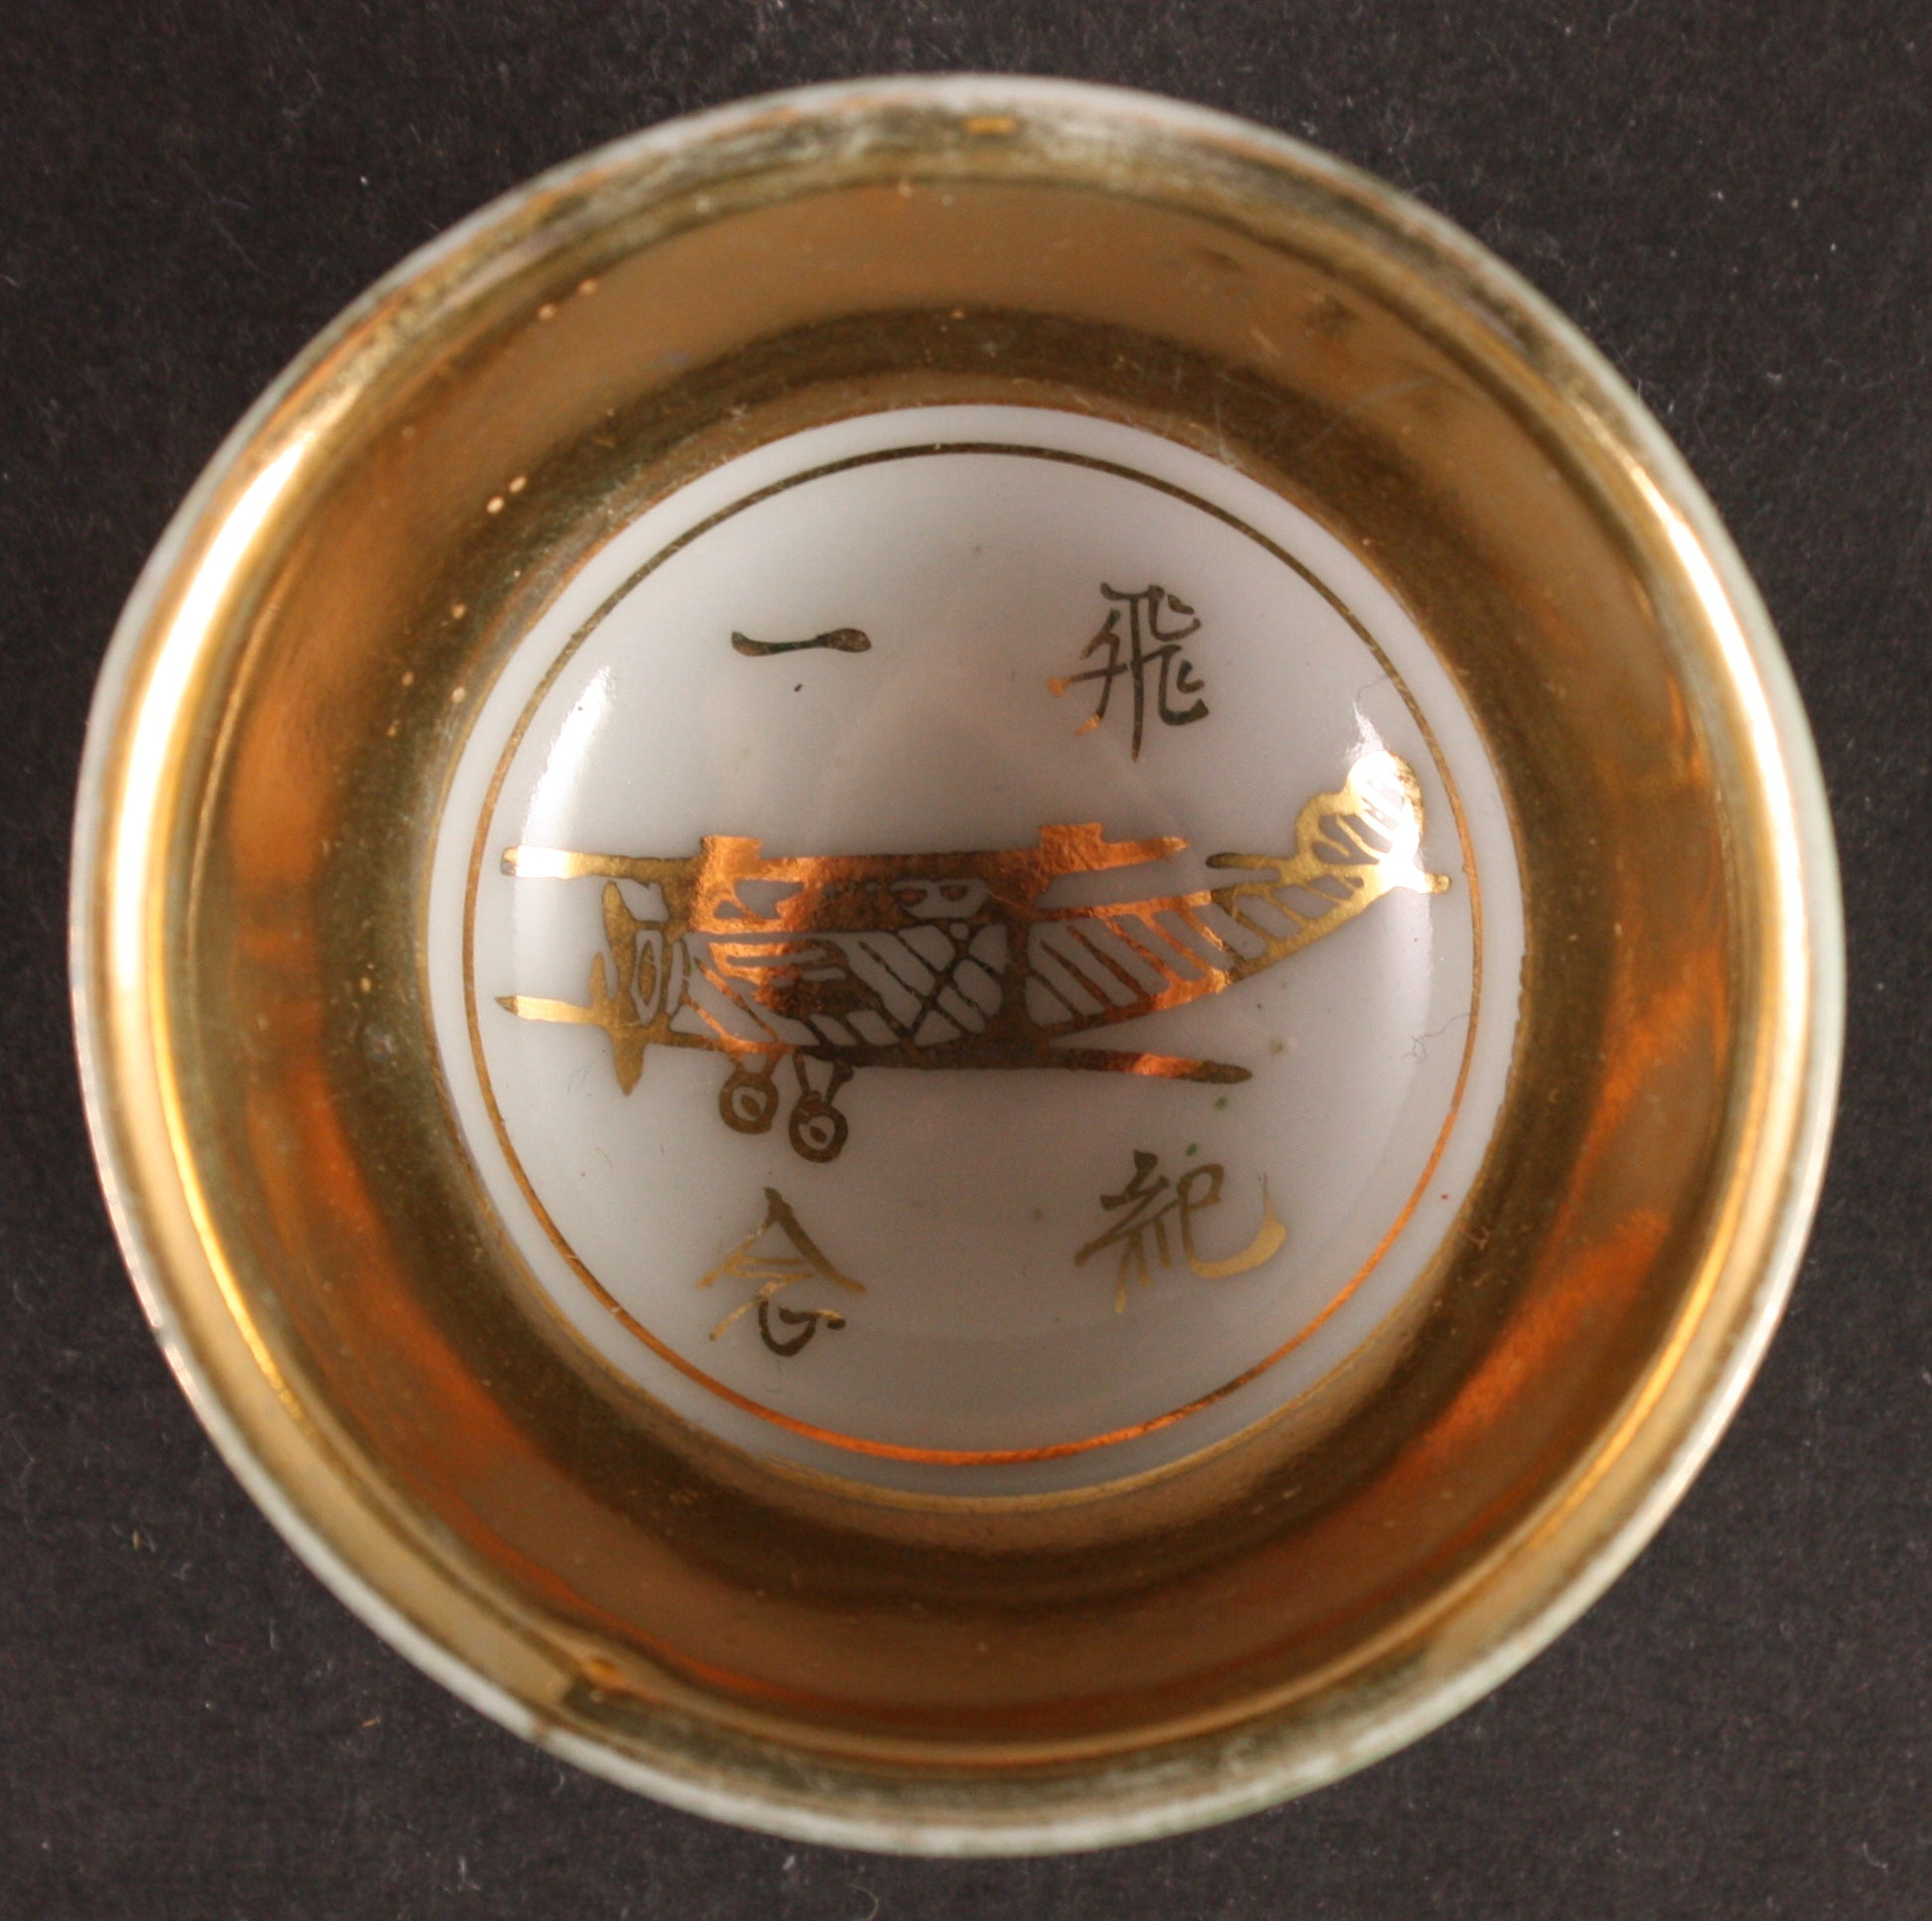 Antique Japanese Military Biplane 1st Air Regiment Army Sake Cup